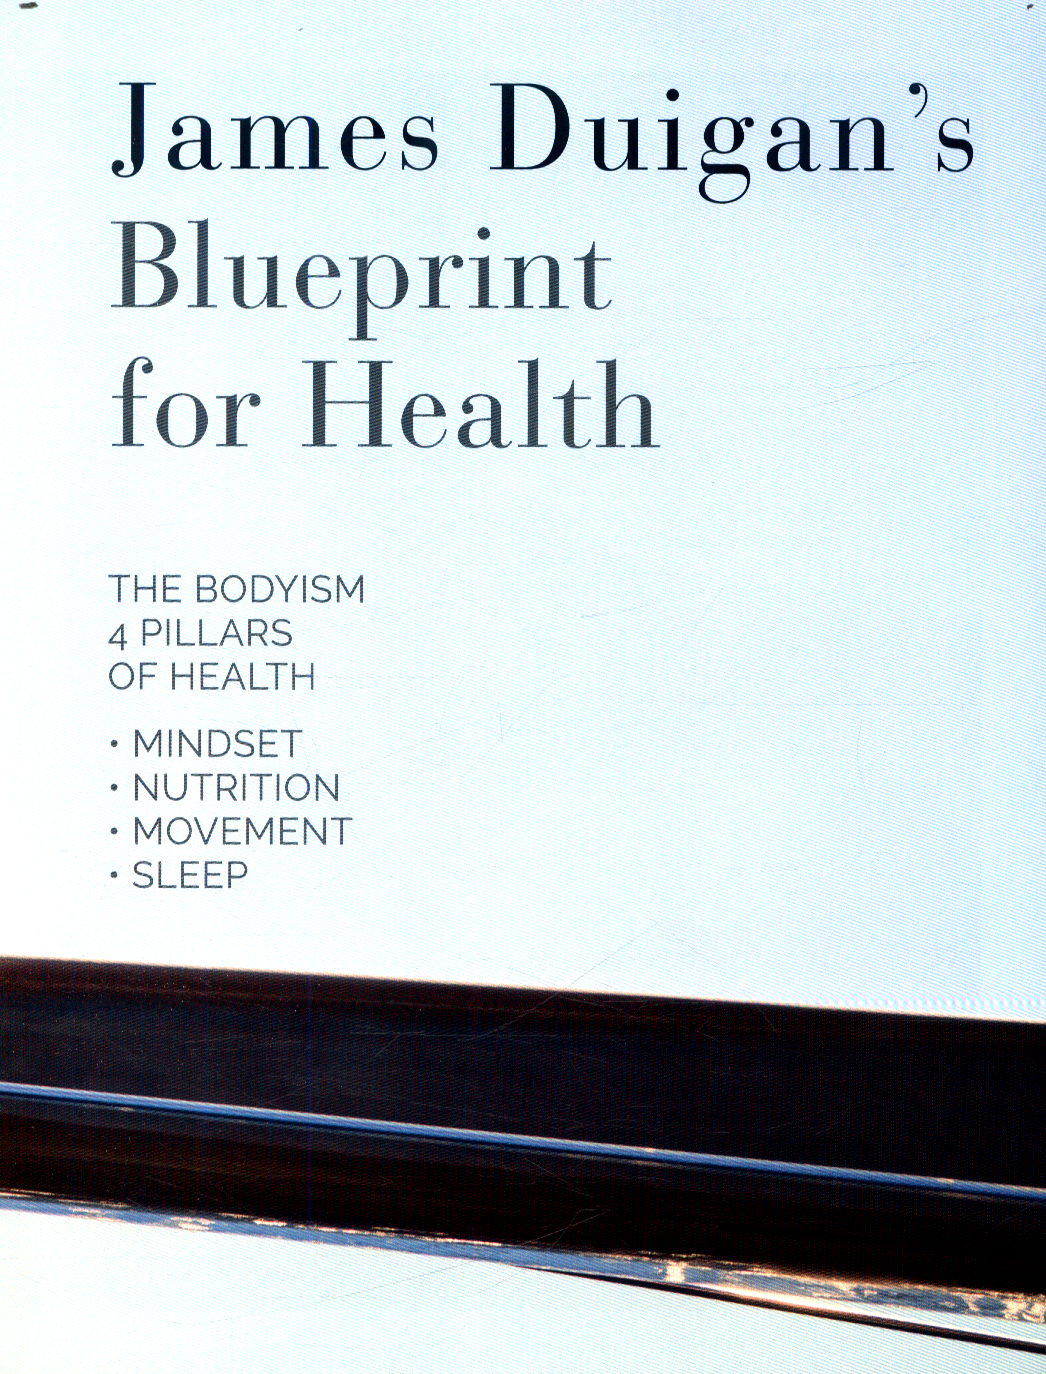 James duigans blueprint for health the bodyism 4 pillars of james duigans blueprint for health the bodyism 4 pillars of health mindset nutrition movement sleep malvernweather Images